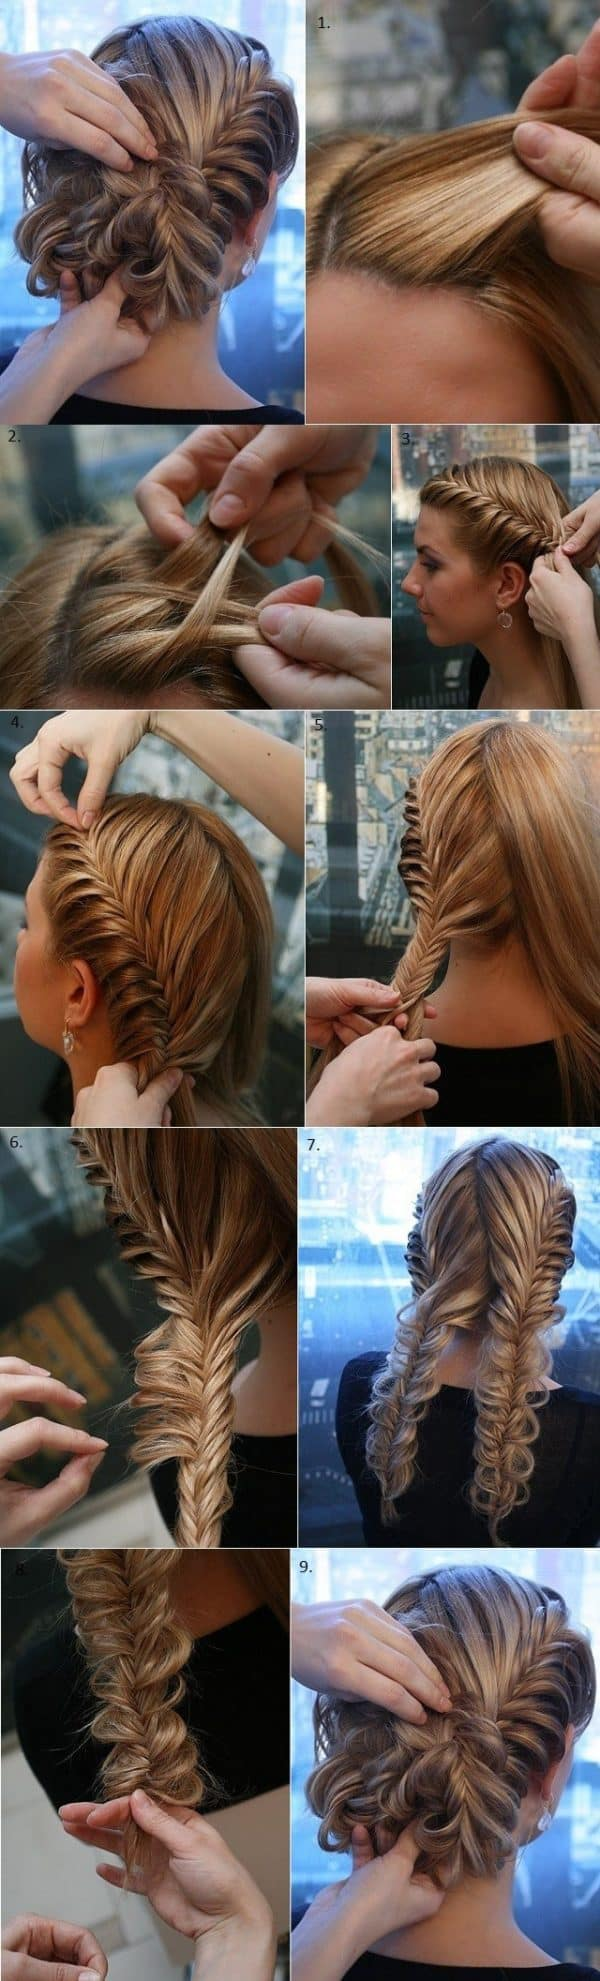 Pretty Hair Tutorials For Teen Girls That Are Easy To Make